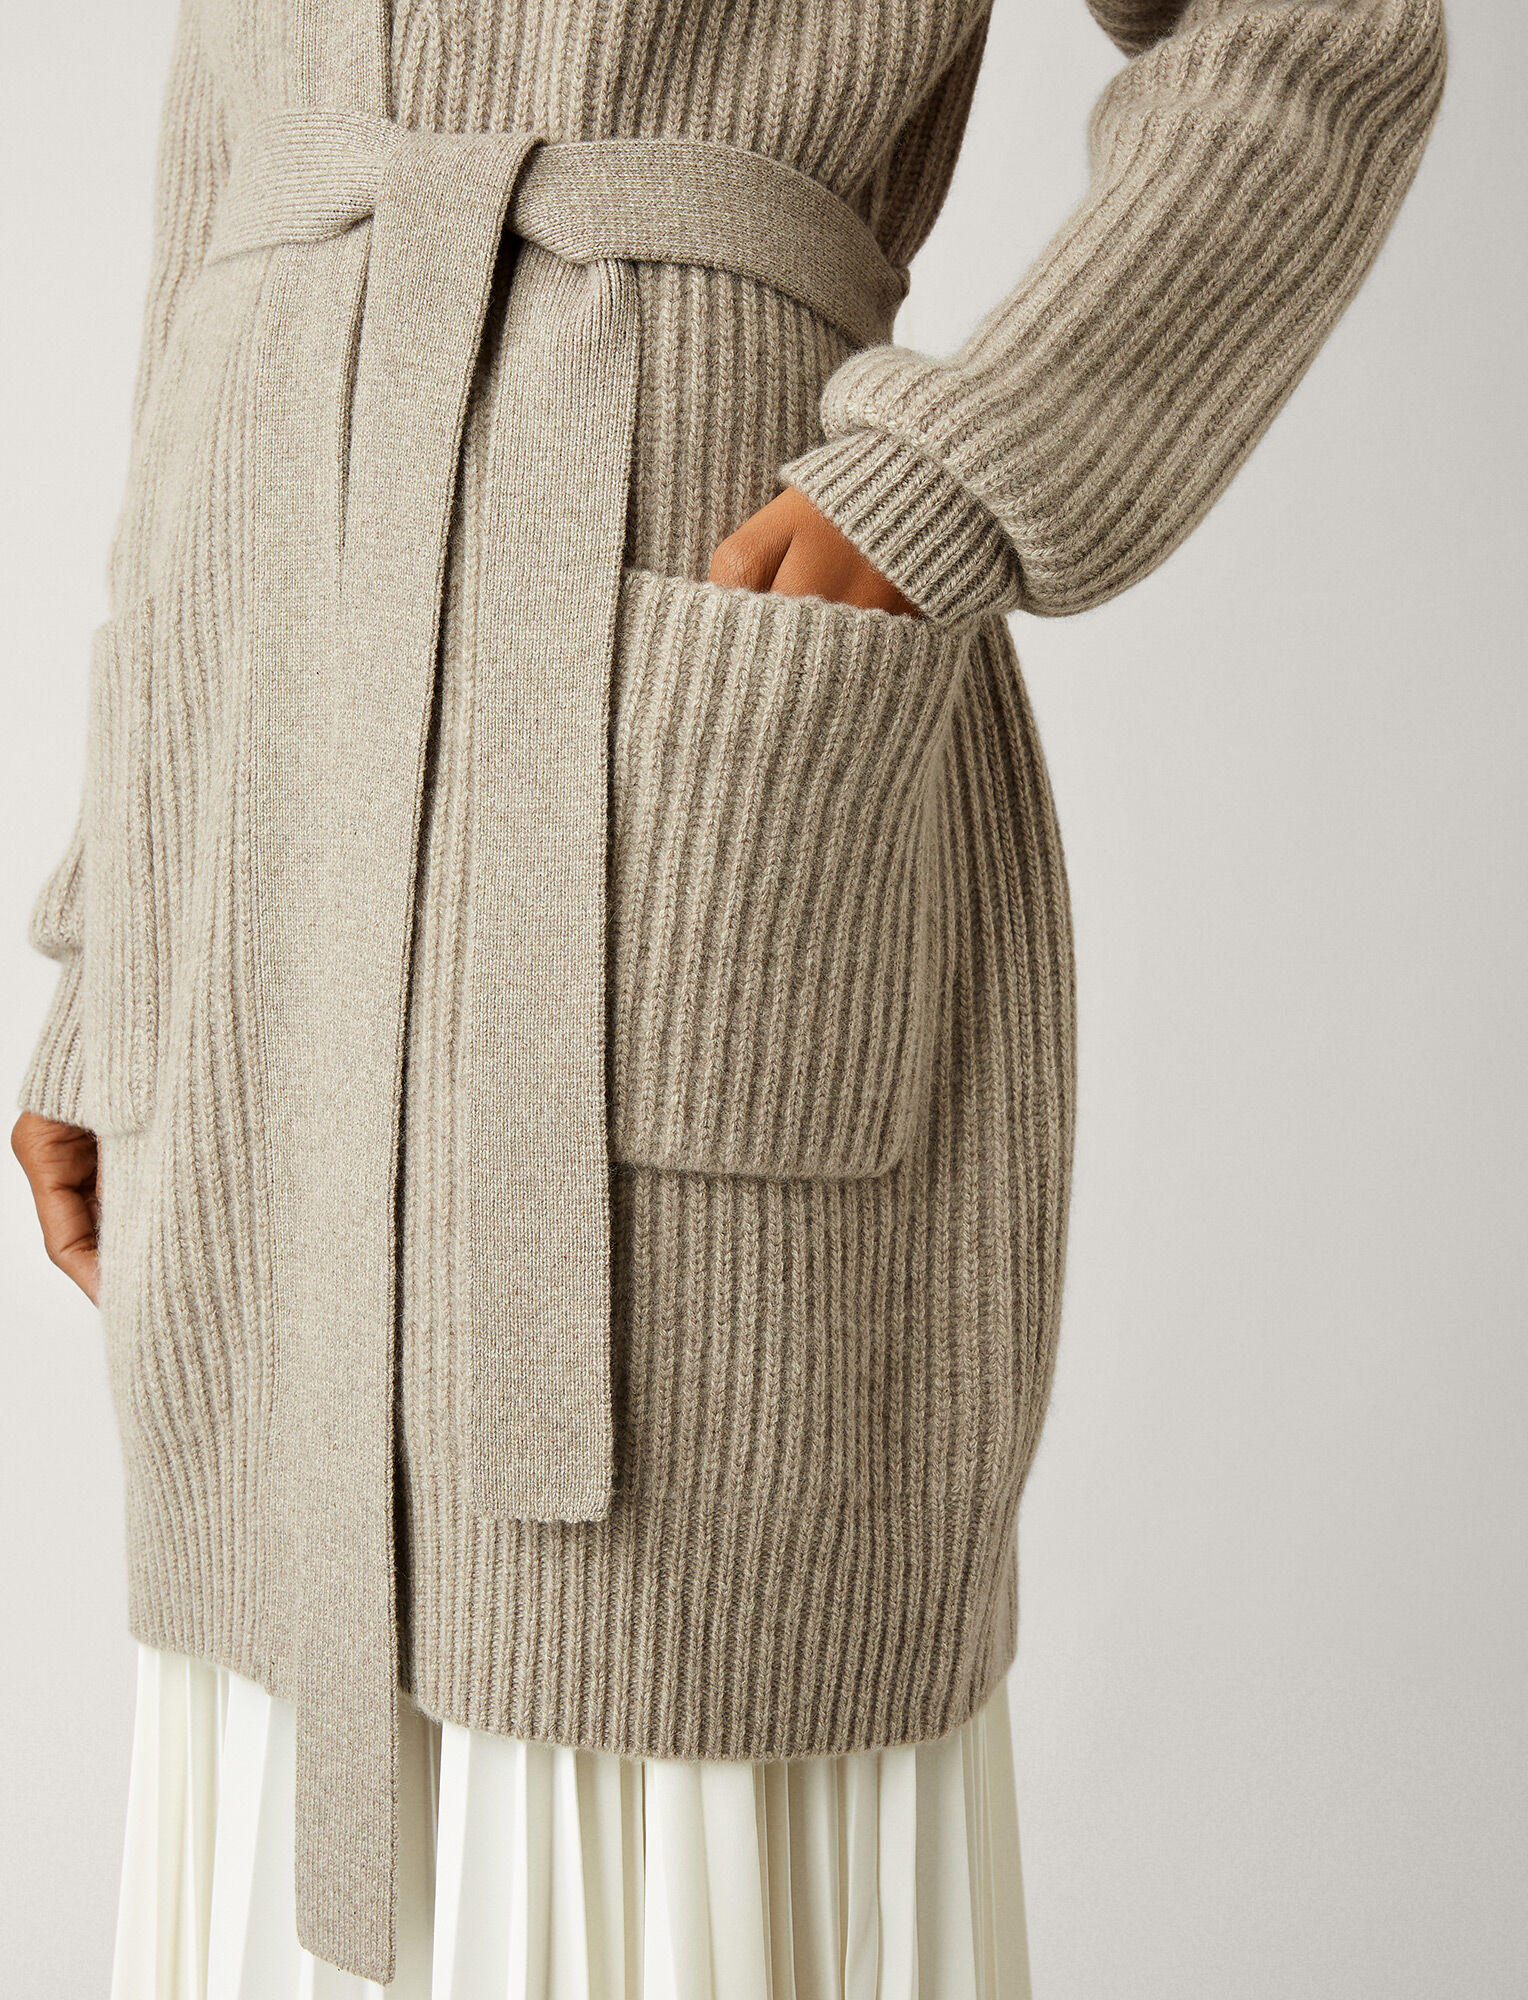 Joseph, Cardigan Cashmere Luxe Knit, in QUARTZ